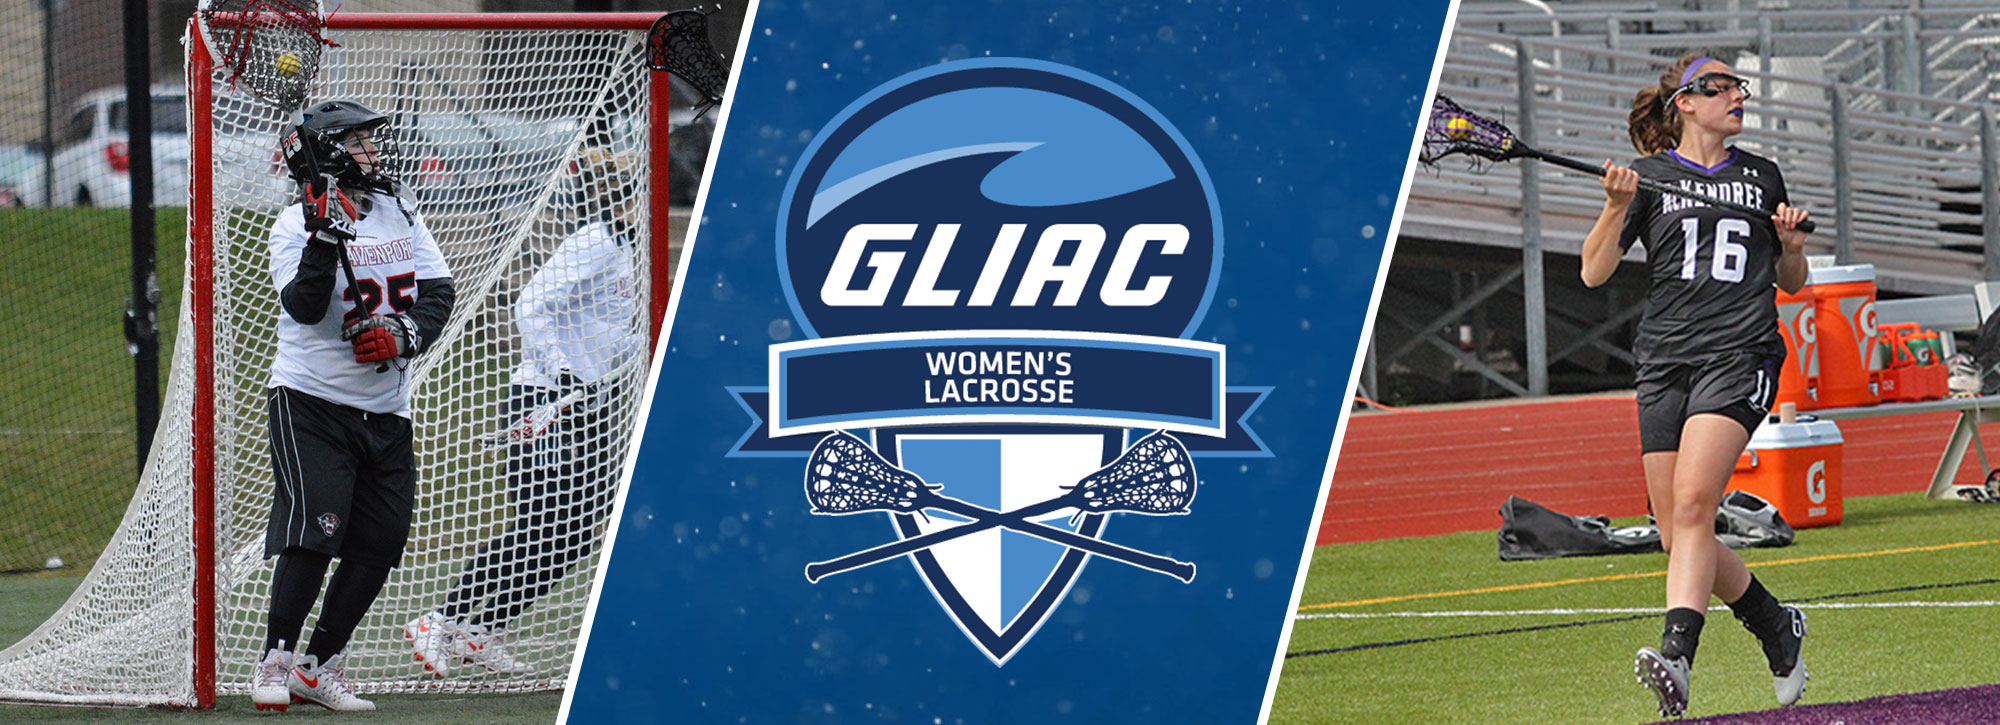 Davenport's Yates, McKendree's Nelson Earn GLIAC Lacrosse Weekly Honors